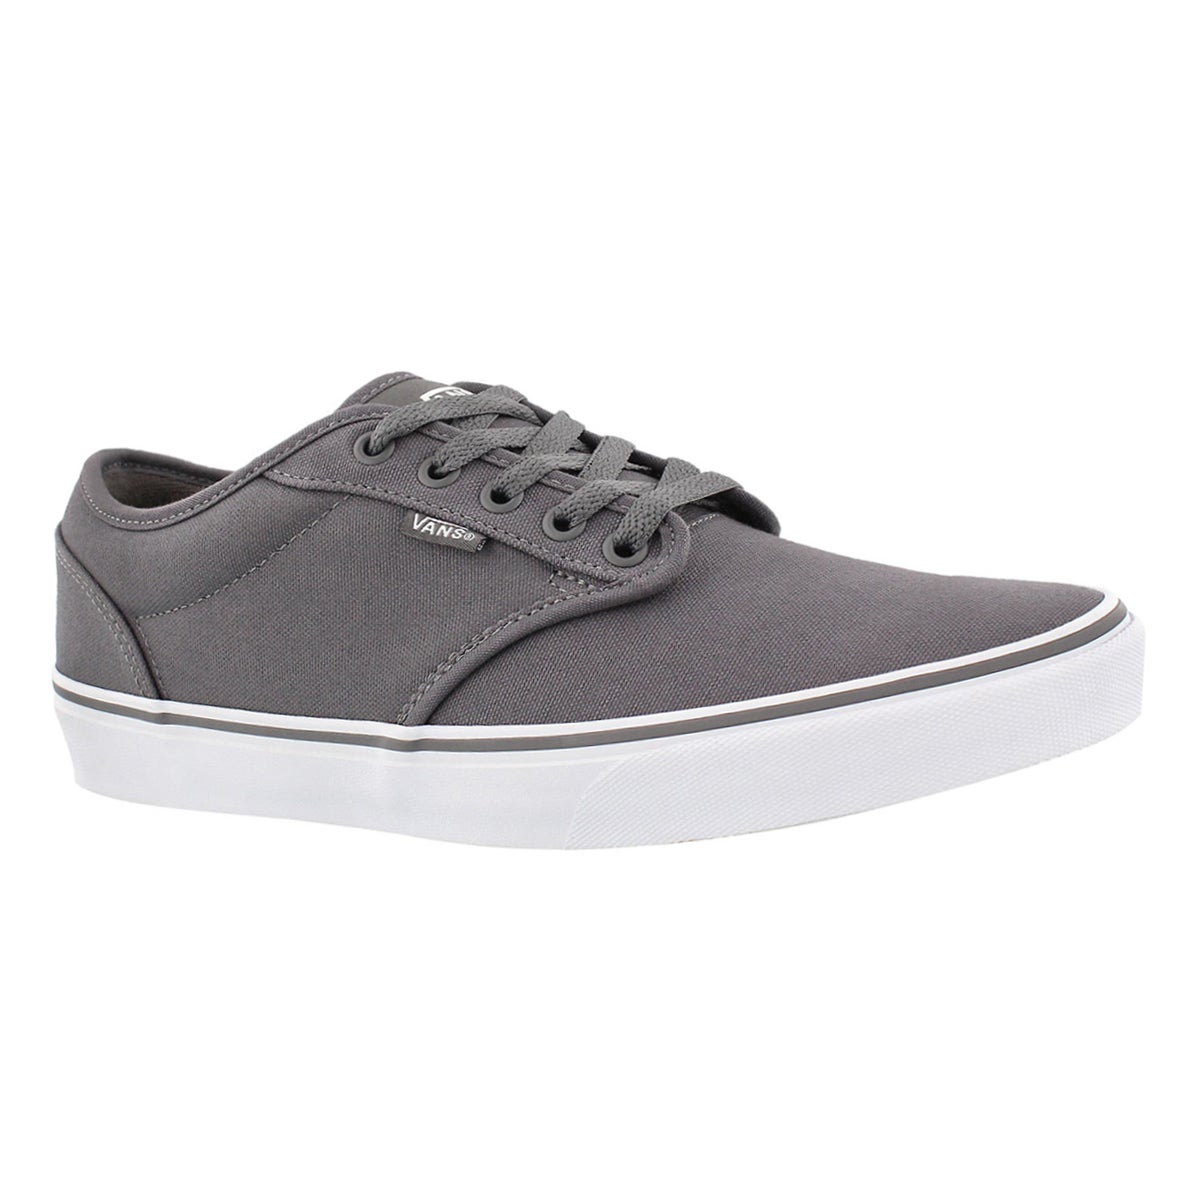 Men's ATWOOD pewter canvas laceup sneakers